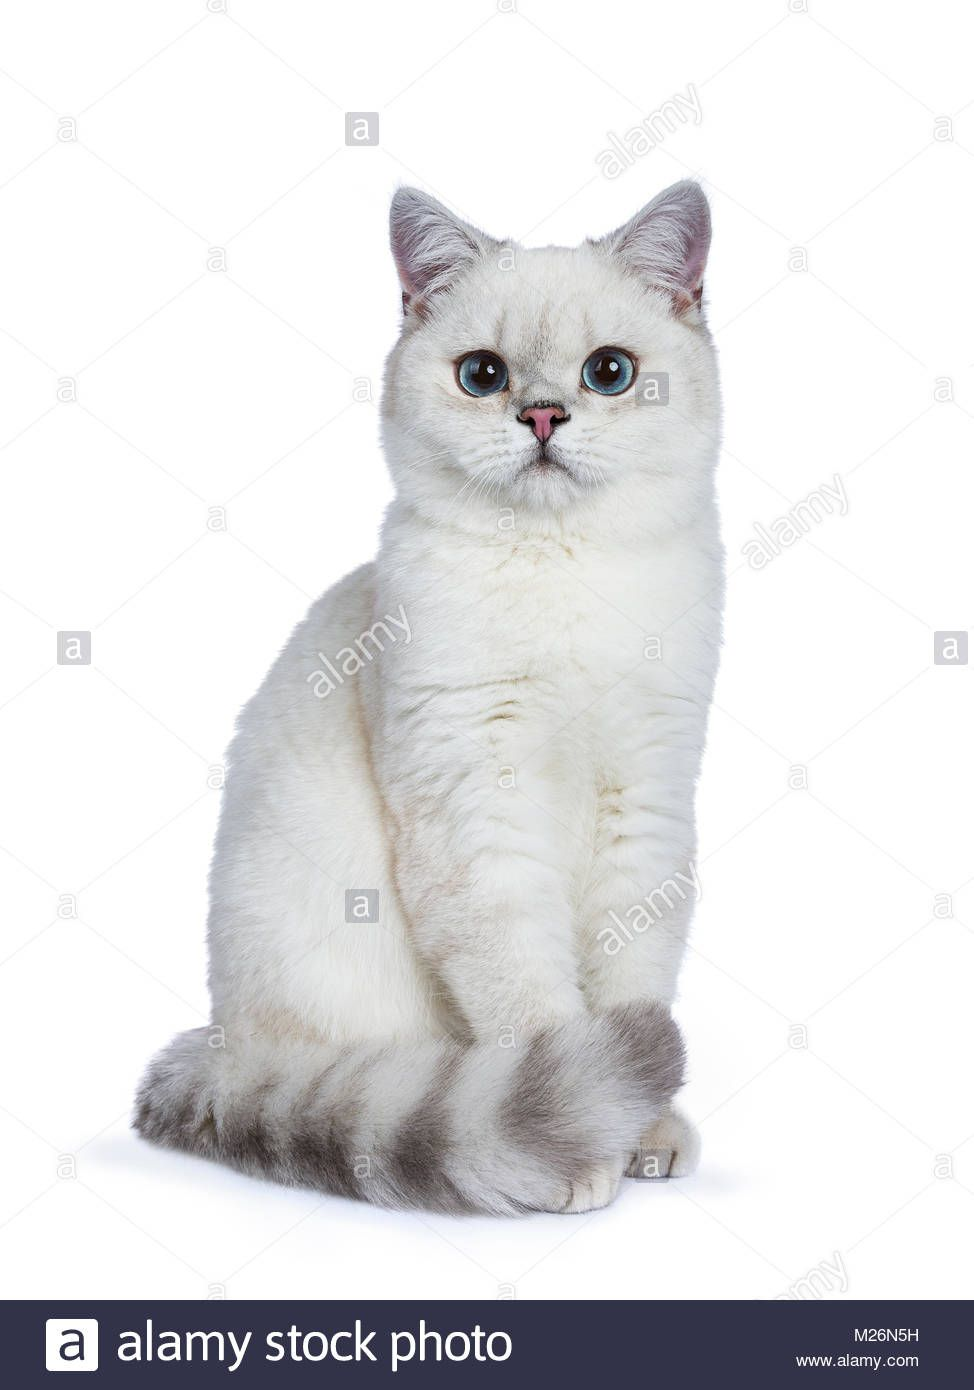 Download This Stock Image Silver Tabby Seal Point British Shorthair Sitting In Front Of The Camera Look British Shorthair Cute Cats And Kittens Cute Baby Cats